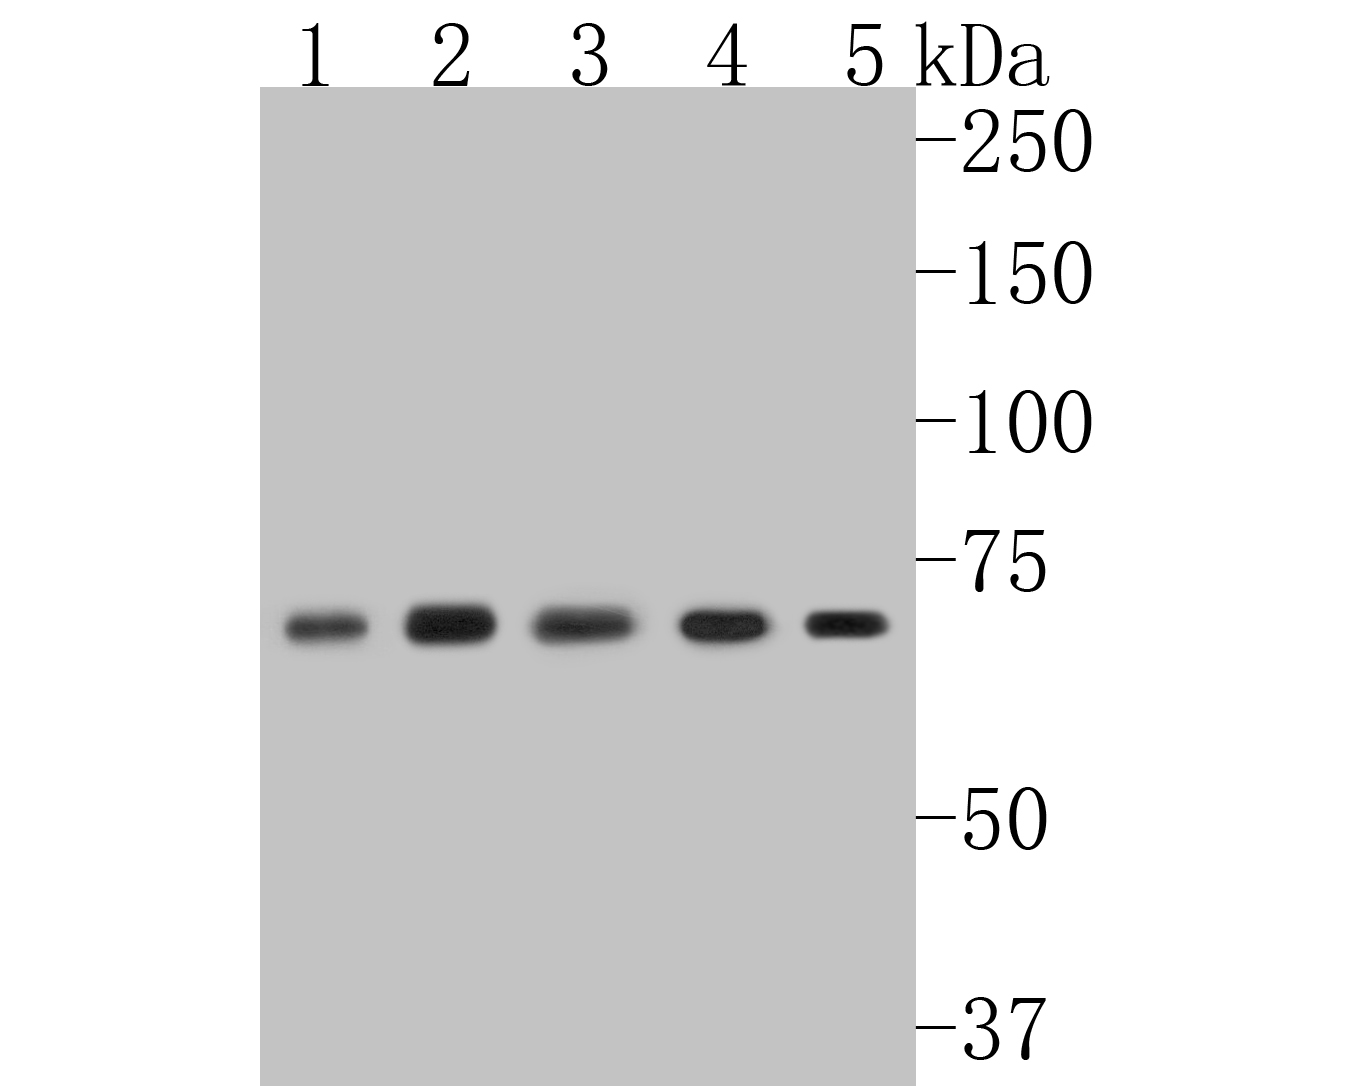 Western blot analysis of NF-κB p65 on normal (Hela Control) and NF-κB p65 knockolut Hela lysates. Proteins were transferred to a PVDF membrane and blocked with 5% BSA in PBS for 1 hour at room temperature. The primary antibody (ET1603-12, 1/500) was used in 5% BSA at room temperature for 2 hours. Goat Anti-Rabbit IgG - HRP Secondary Antibody (HA1001) at 1:5,000 dilution was used for 1 hour at room temperature.